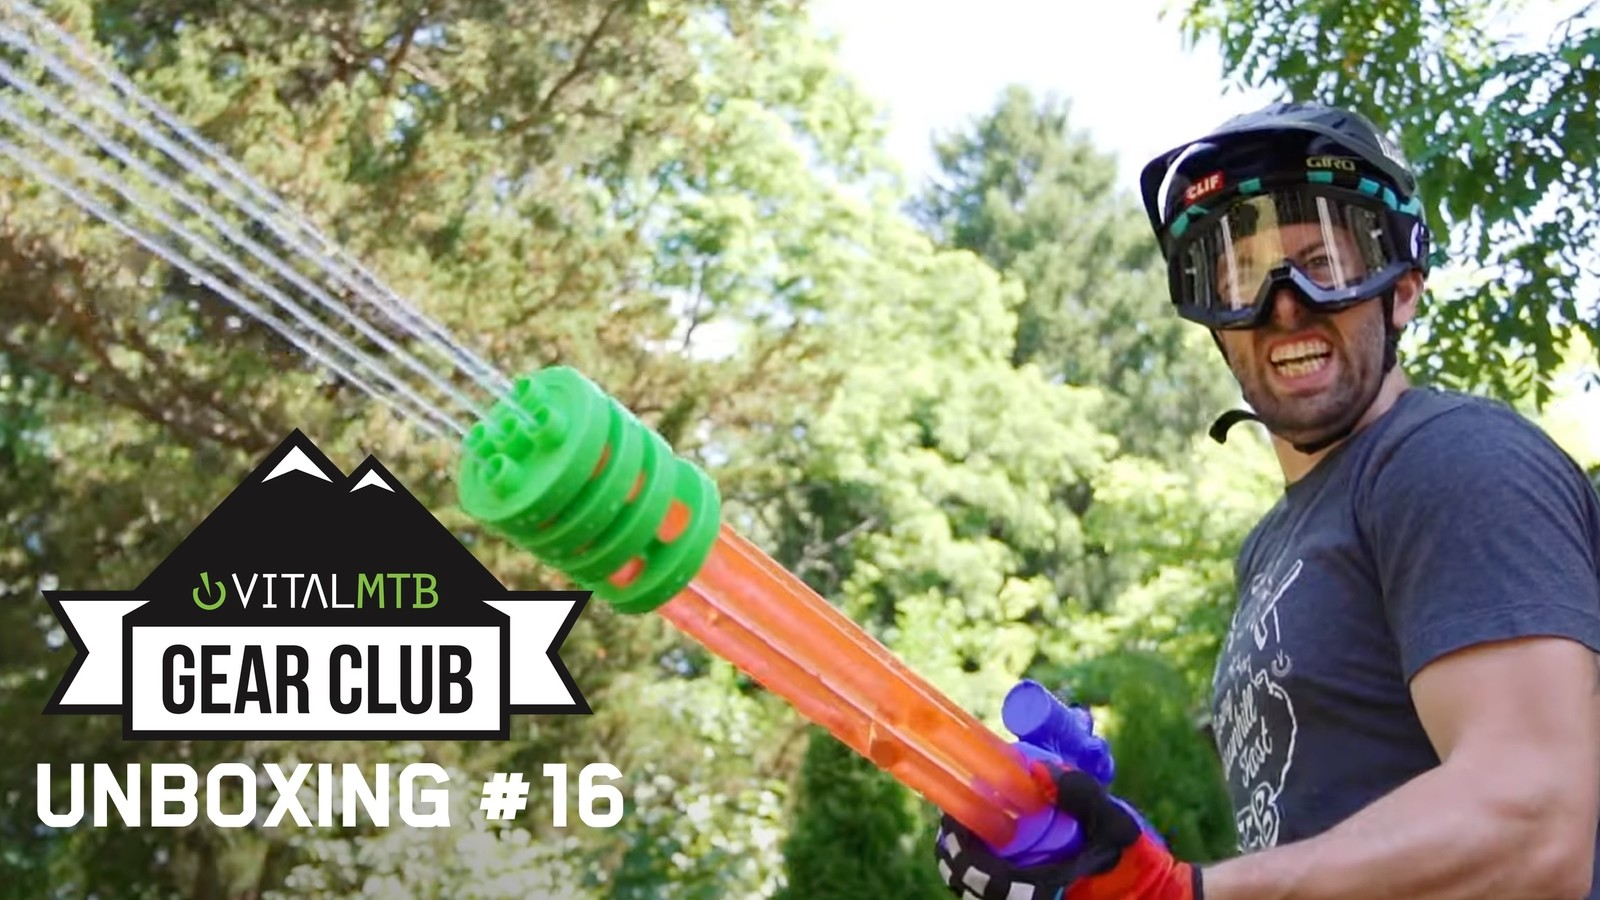 How Do Vital MTB Gear Club Products Really Get Used?